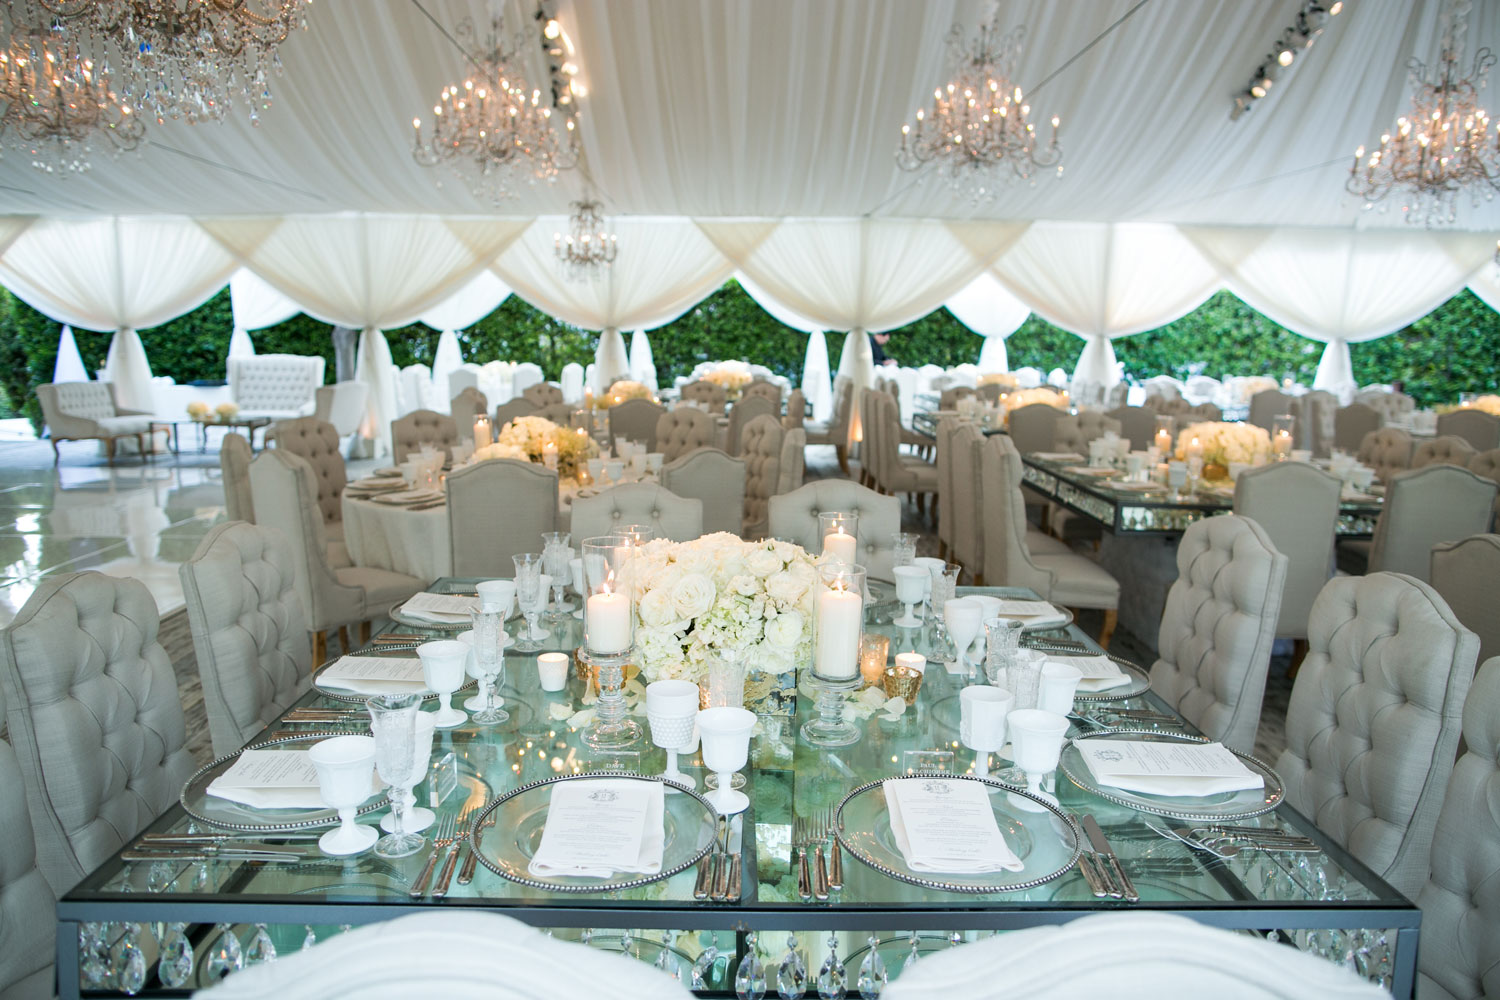 Inside Weddings Fall Winter 2017 Issue Preview tent wedding reception white tan decor neutral wedding : winter tent wedding - memphite.com